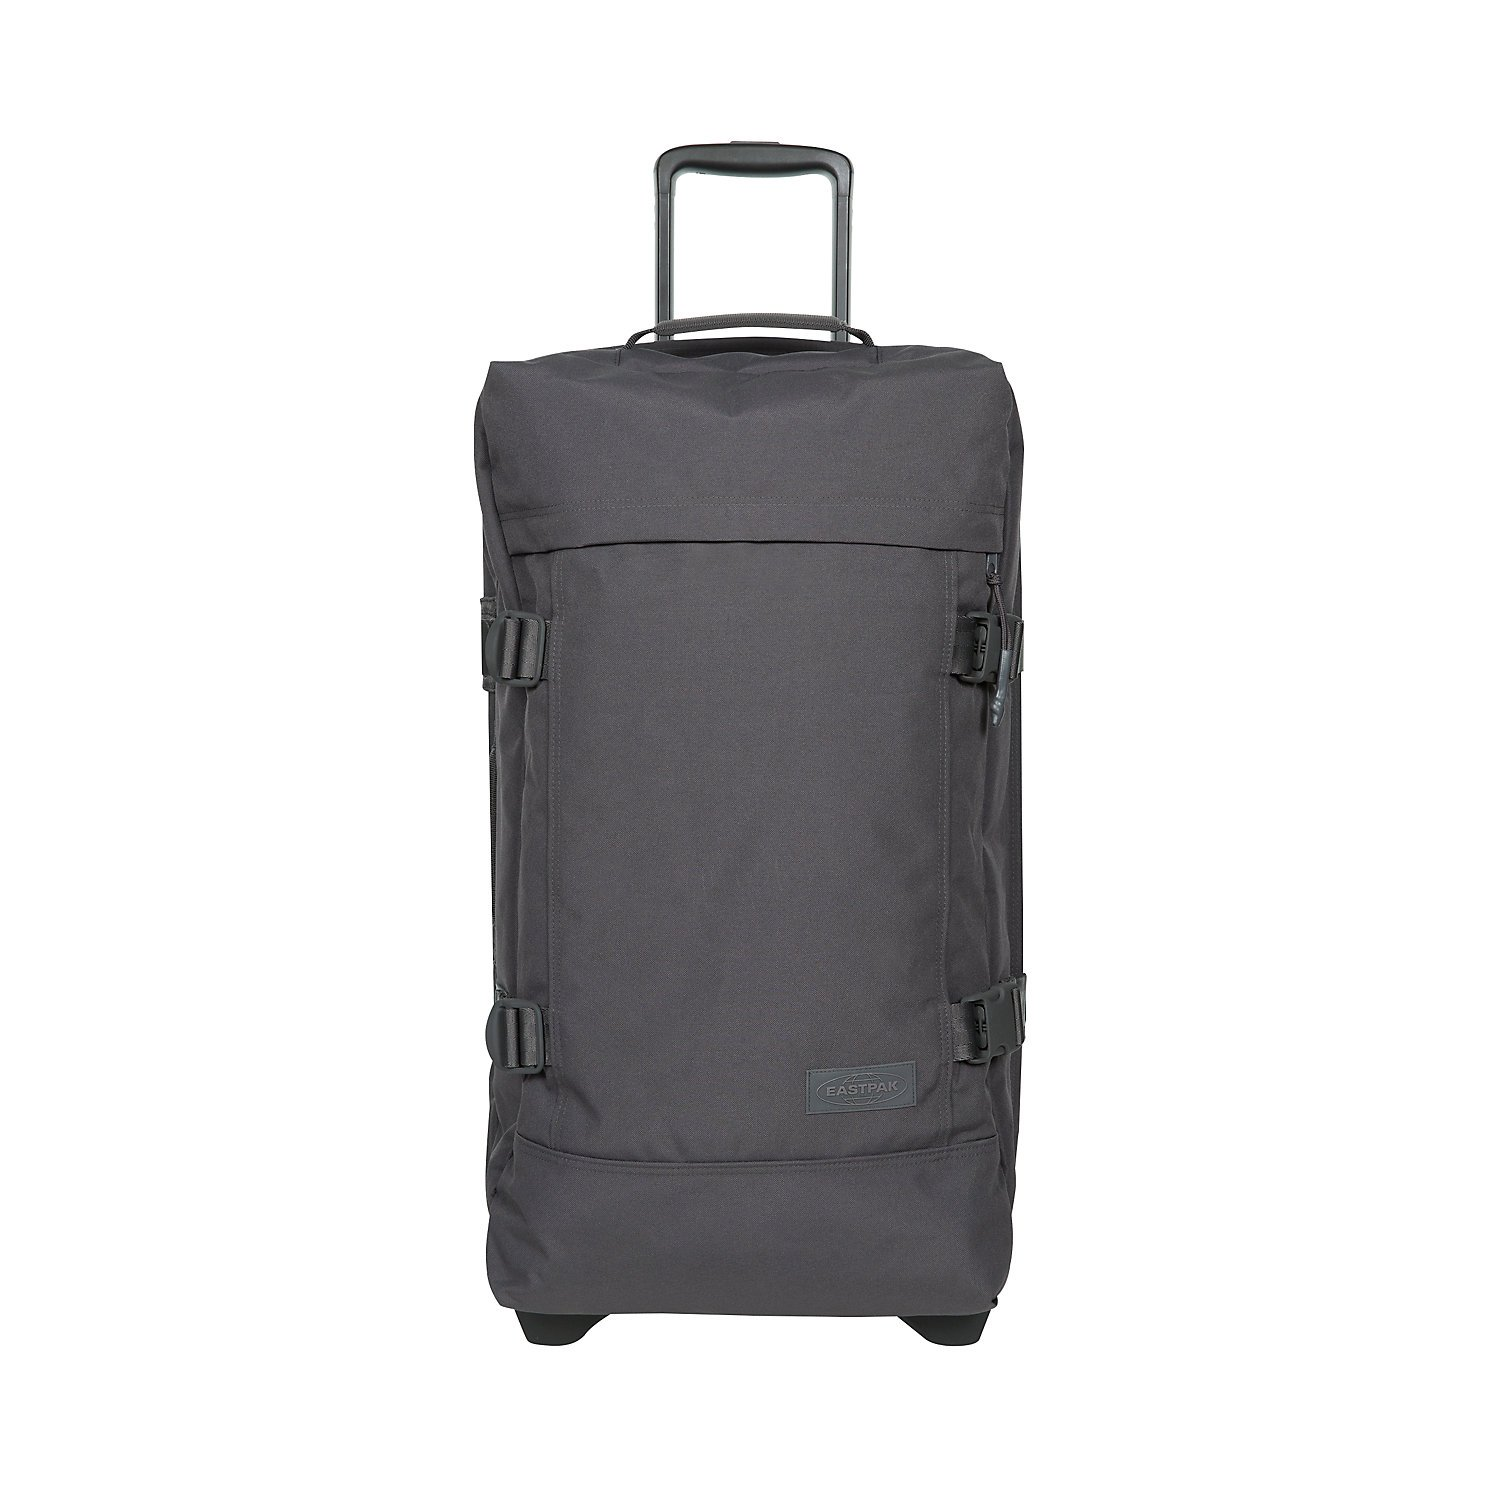 Eastpak Trolley Tranverz M 67cm Authentic 78.0 I EK62L83N